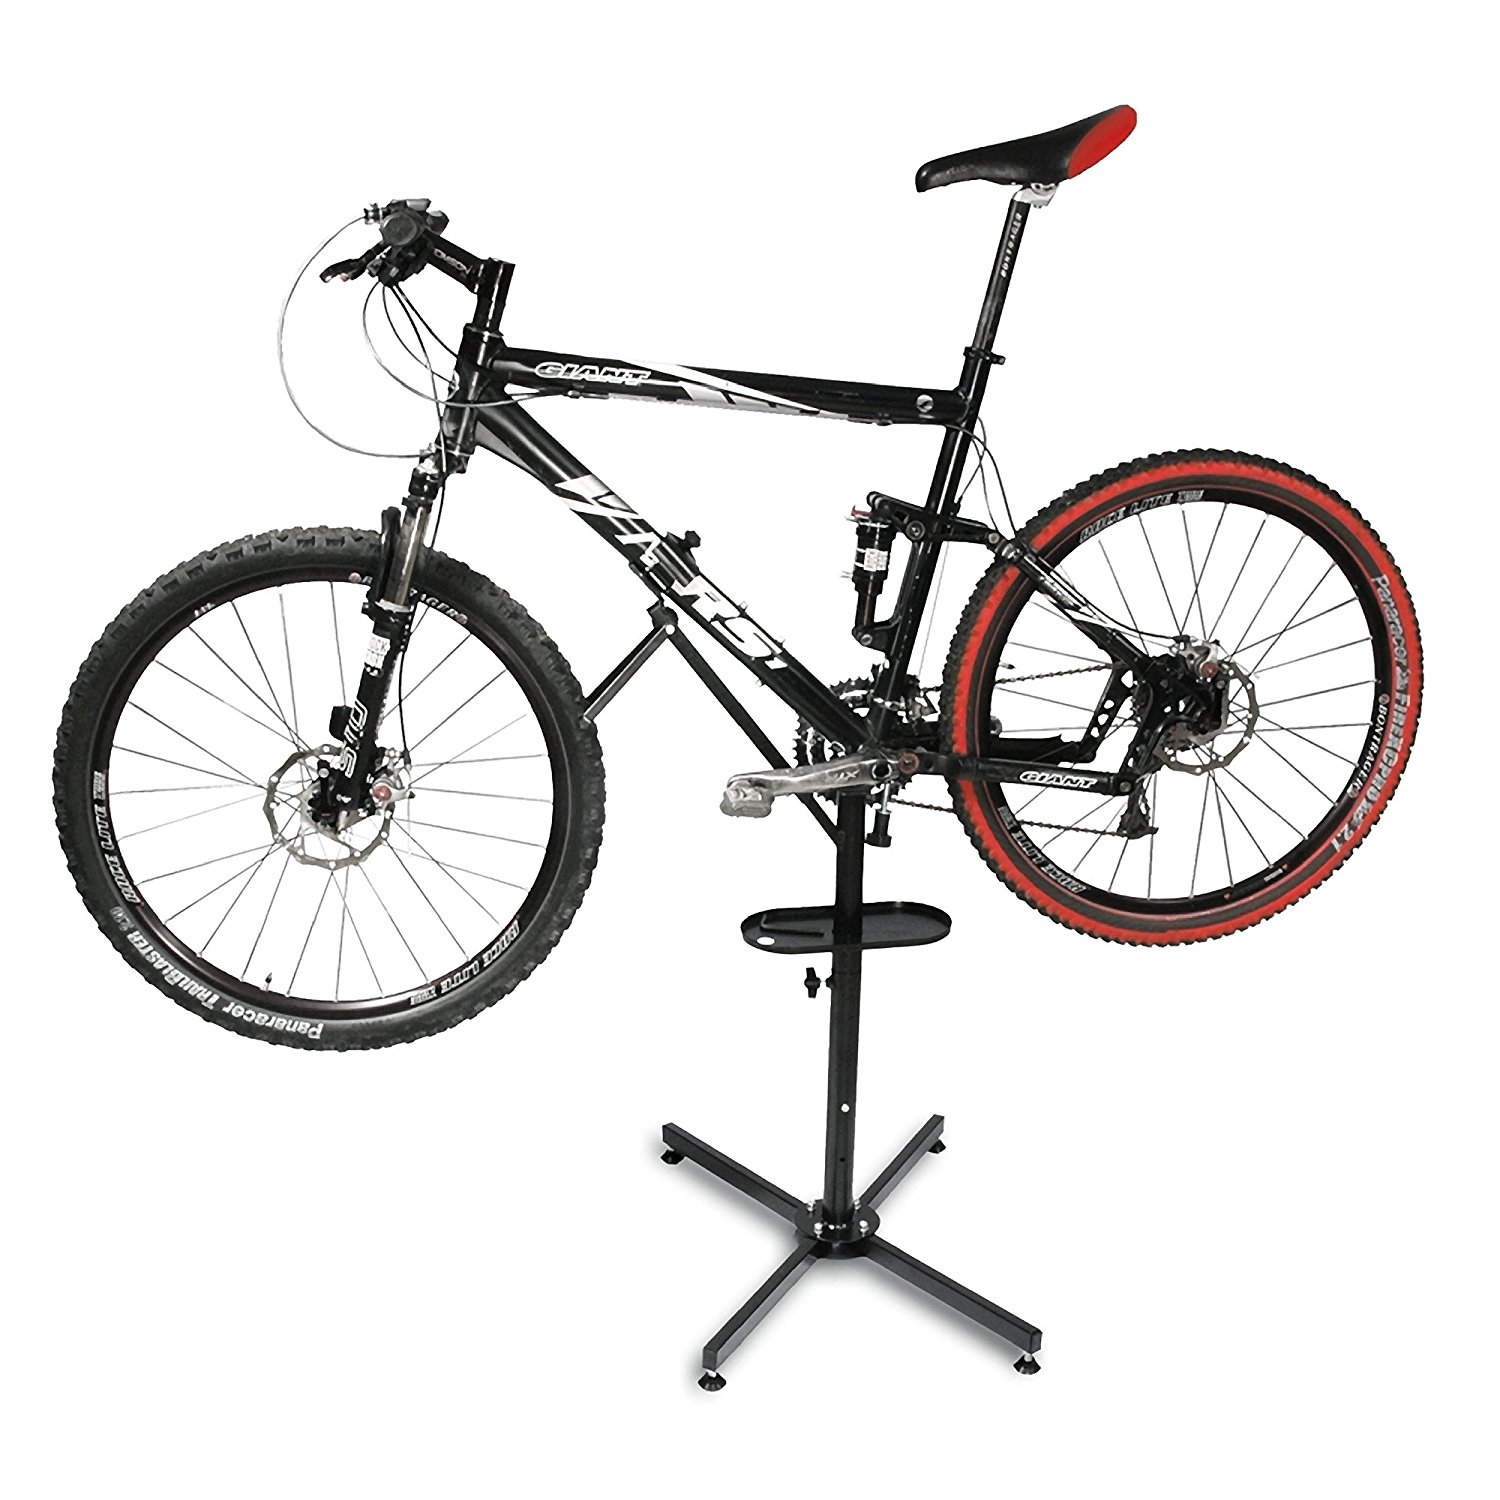 Amazon.com : RAD Cycle Products Pro Mechanic Bicycle Repair Stand ...